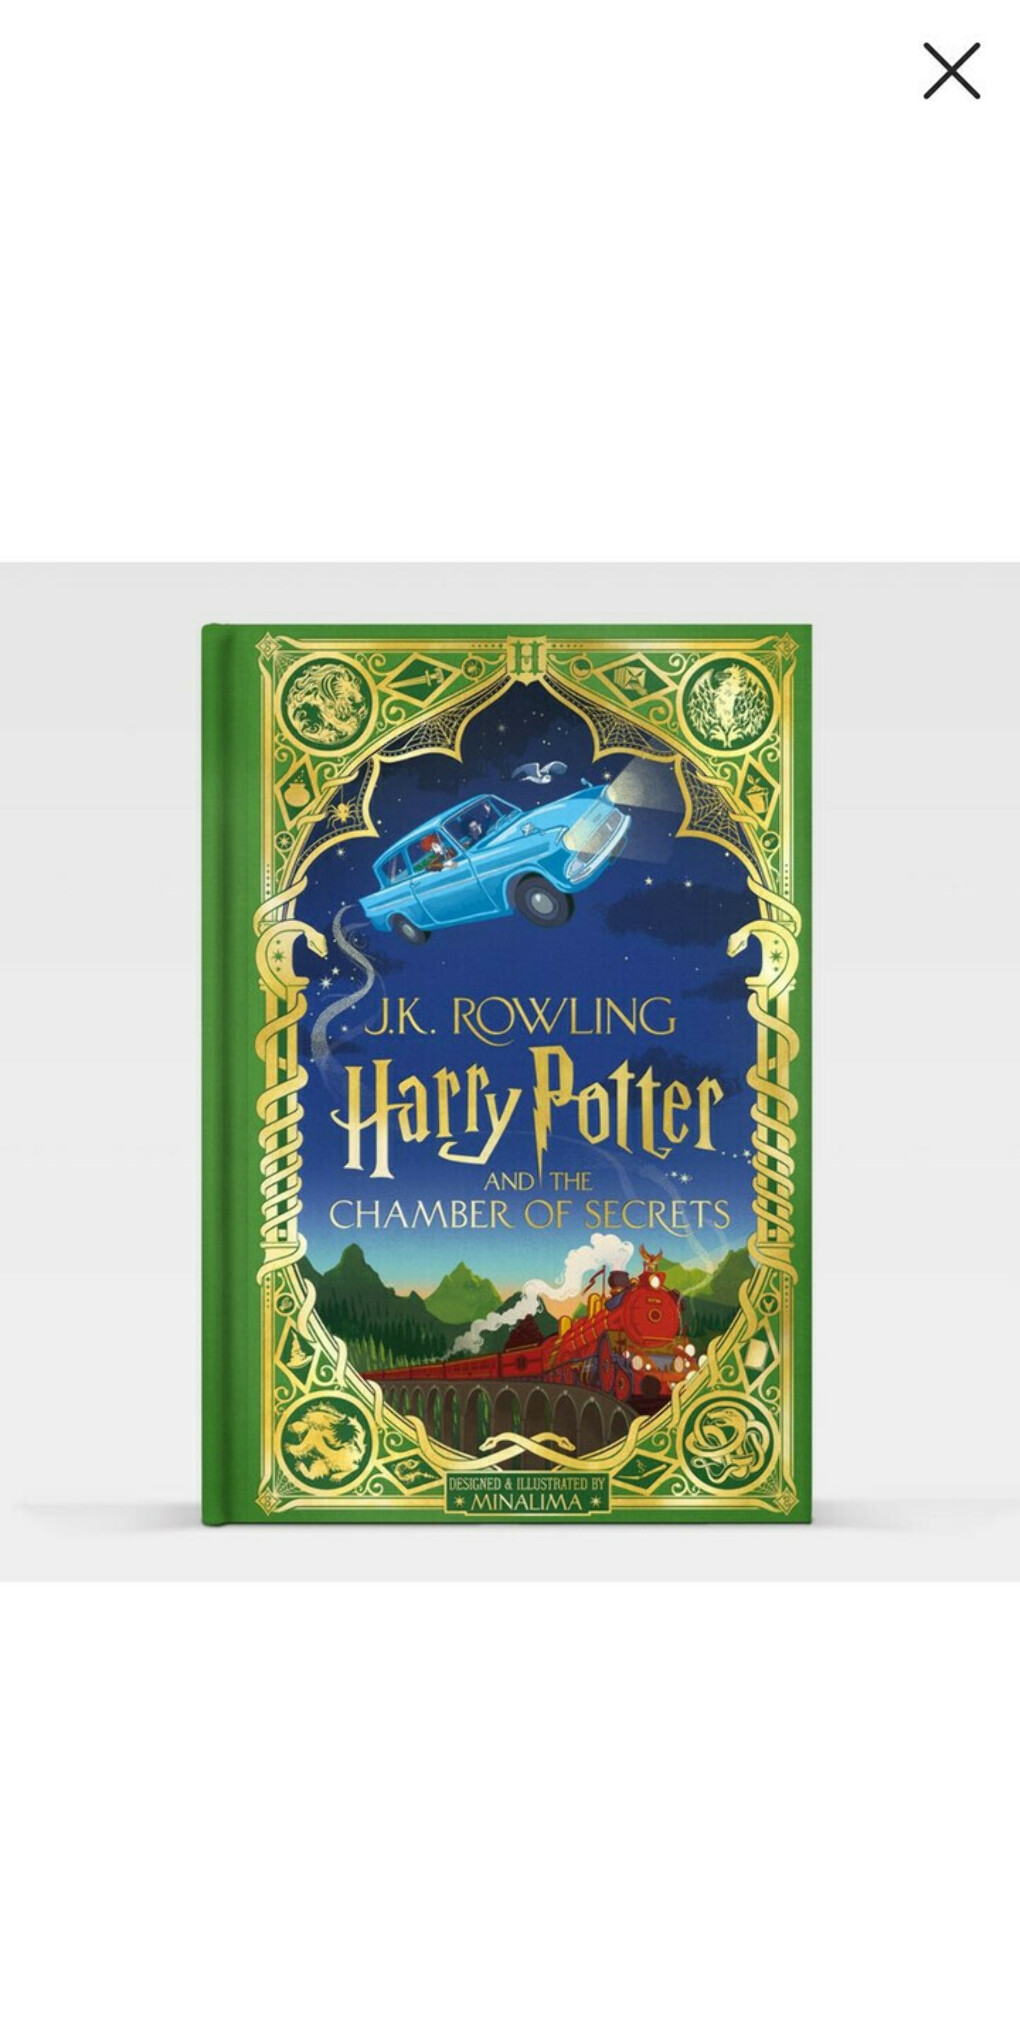 HARRY POTTER AND THE CHAMBER OF SECRETS (SIGNED COPY) - UK EDITION